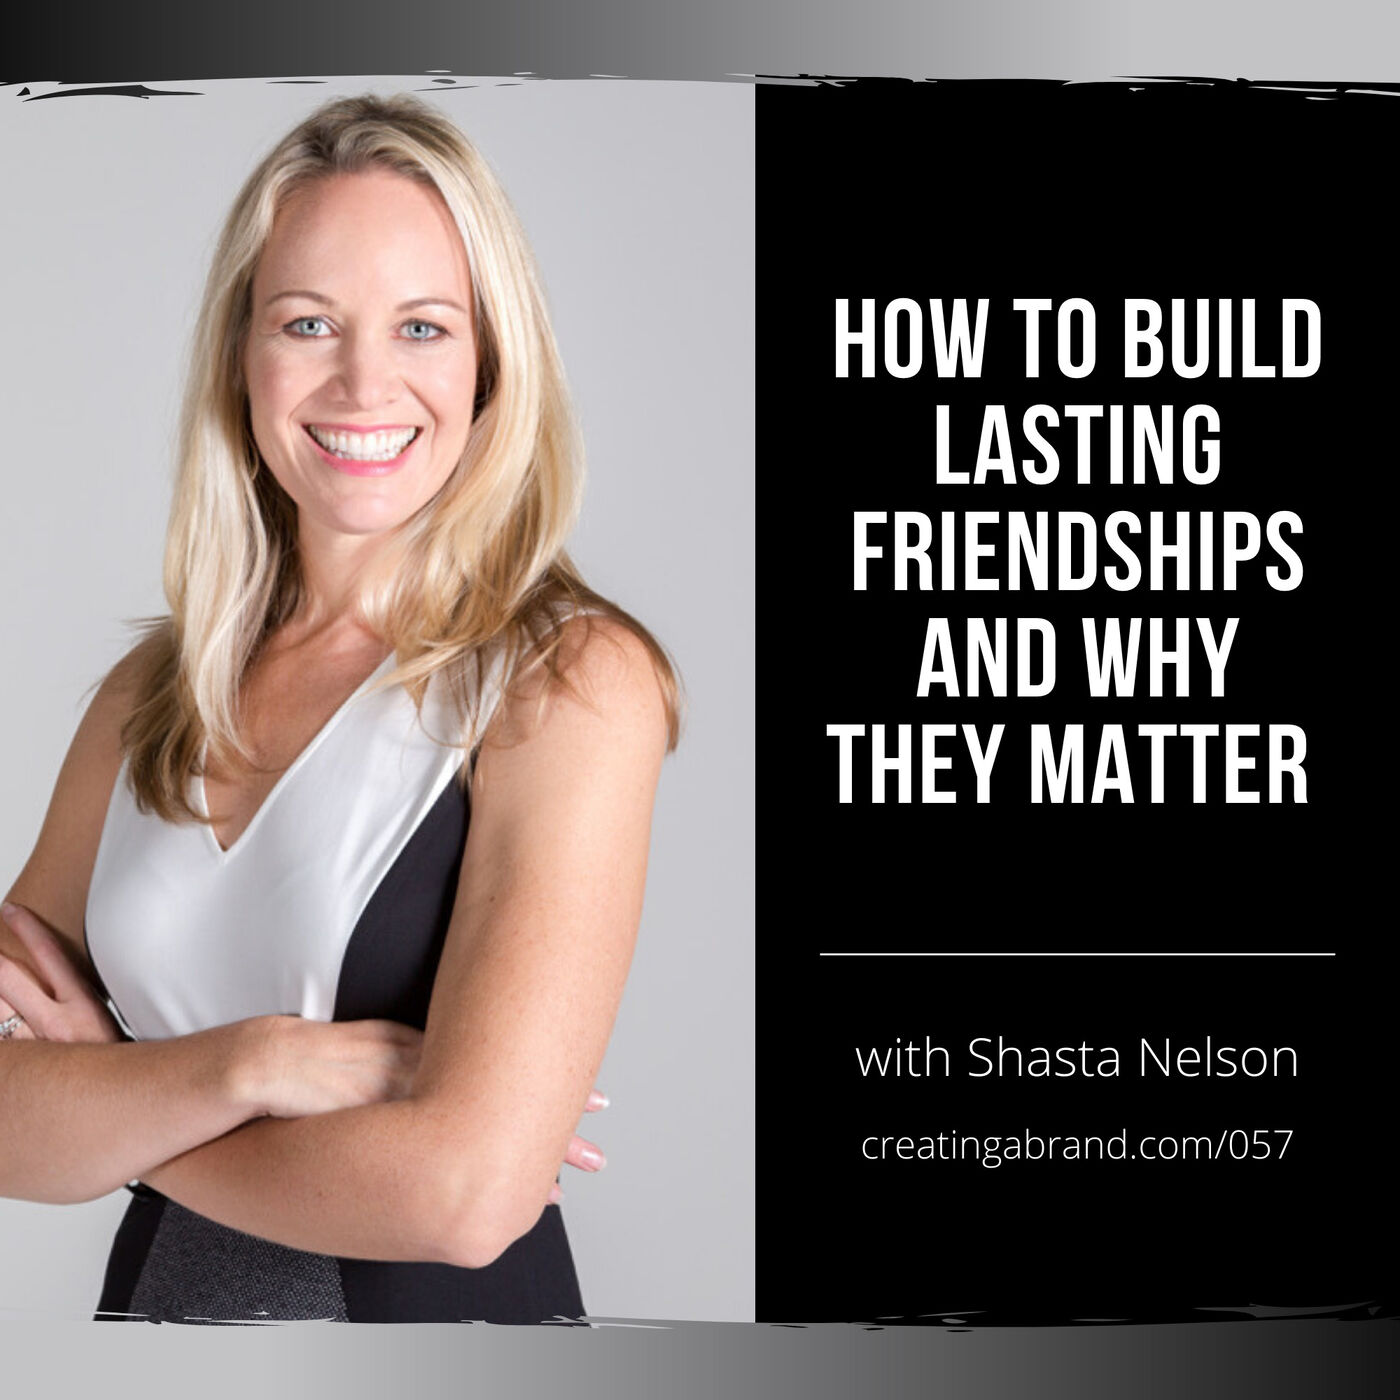 How to Build Lasting Friendships and Why They Matter with Shasta Nelson